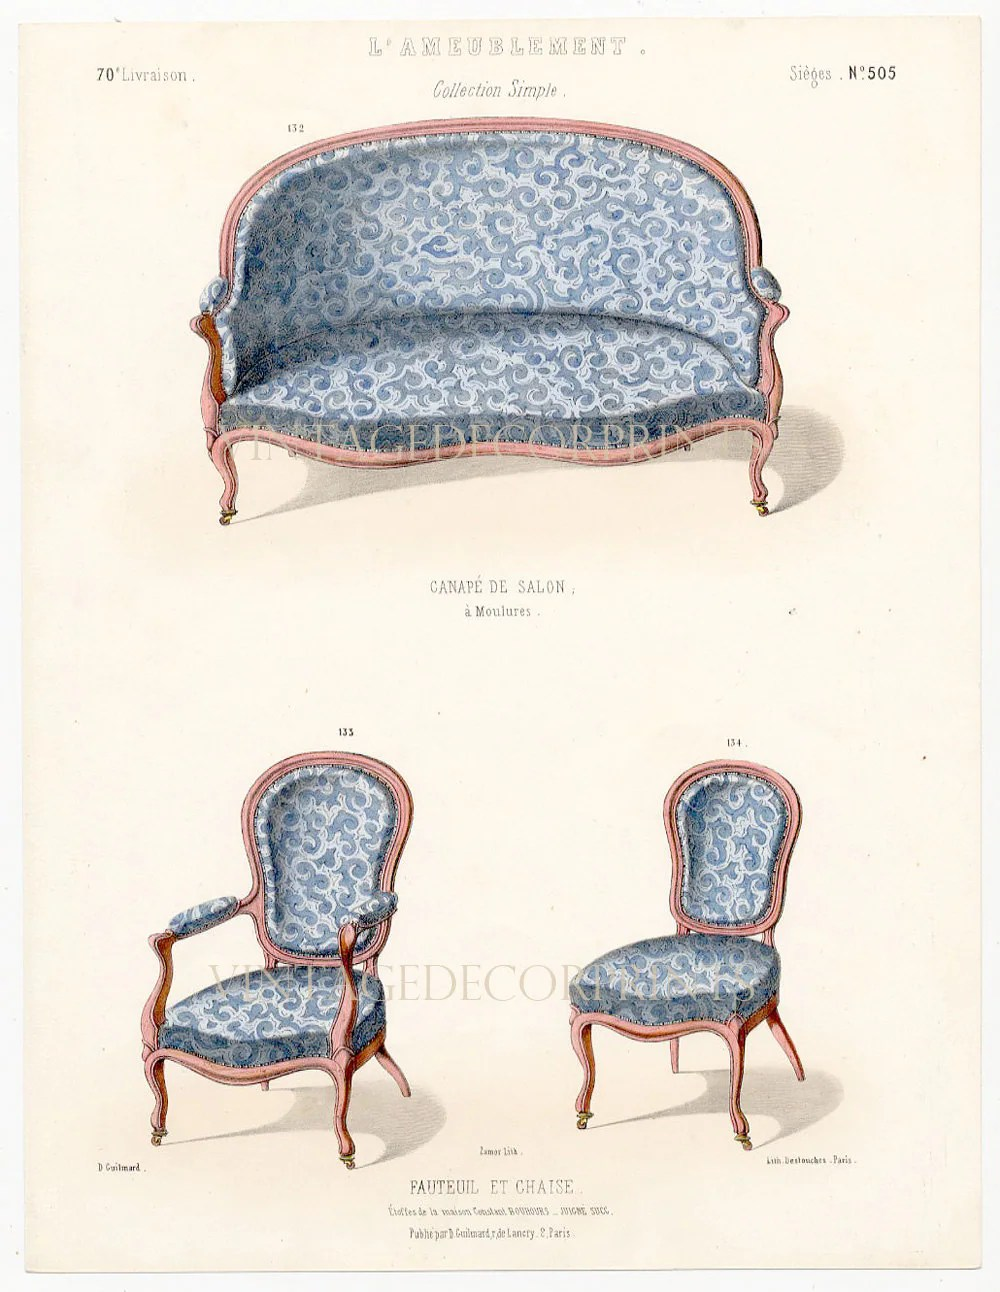 Salon Louis Xiv Meuble Interior Design Print Of French Furniture Chairs By Guilmard Paris C1866 Original French Antique Hand Coloured Lithograph Decorative Print